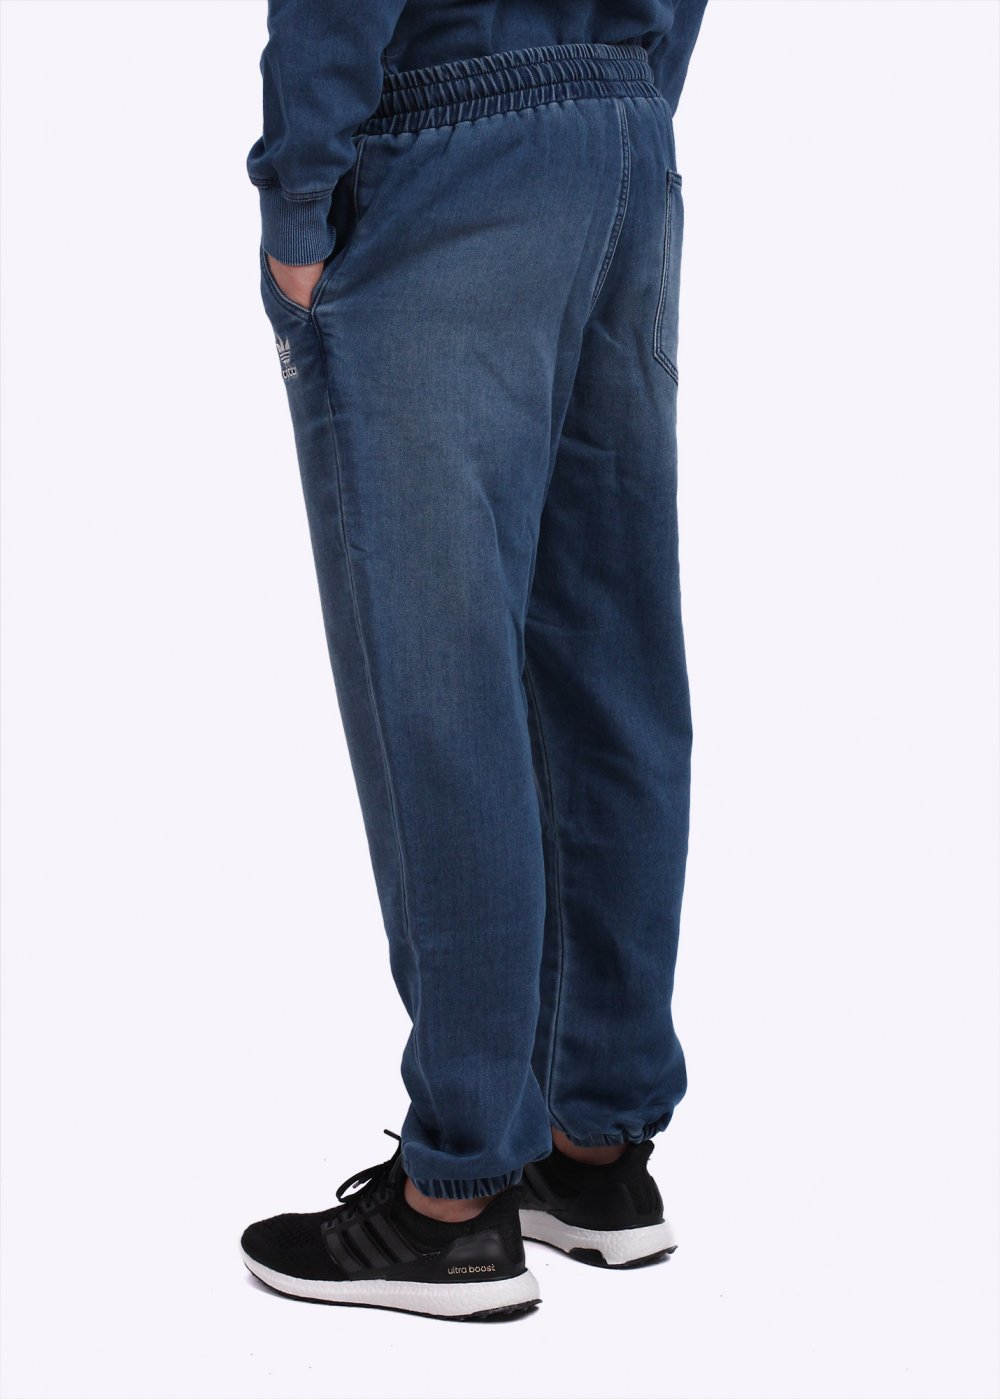 Comfortable Mens Jeans